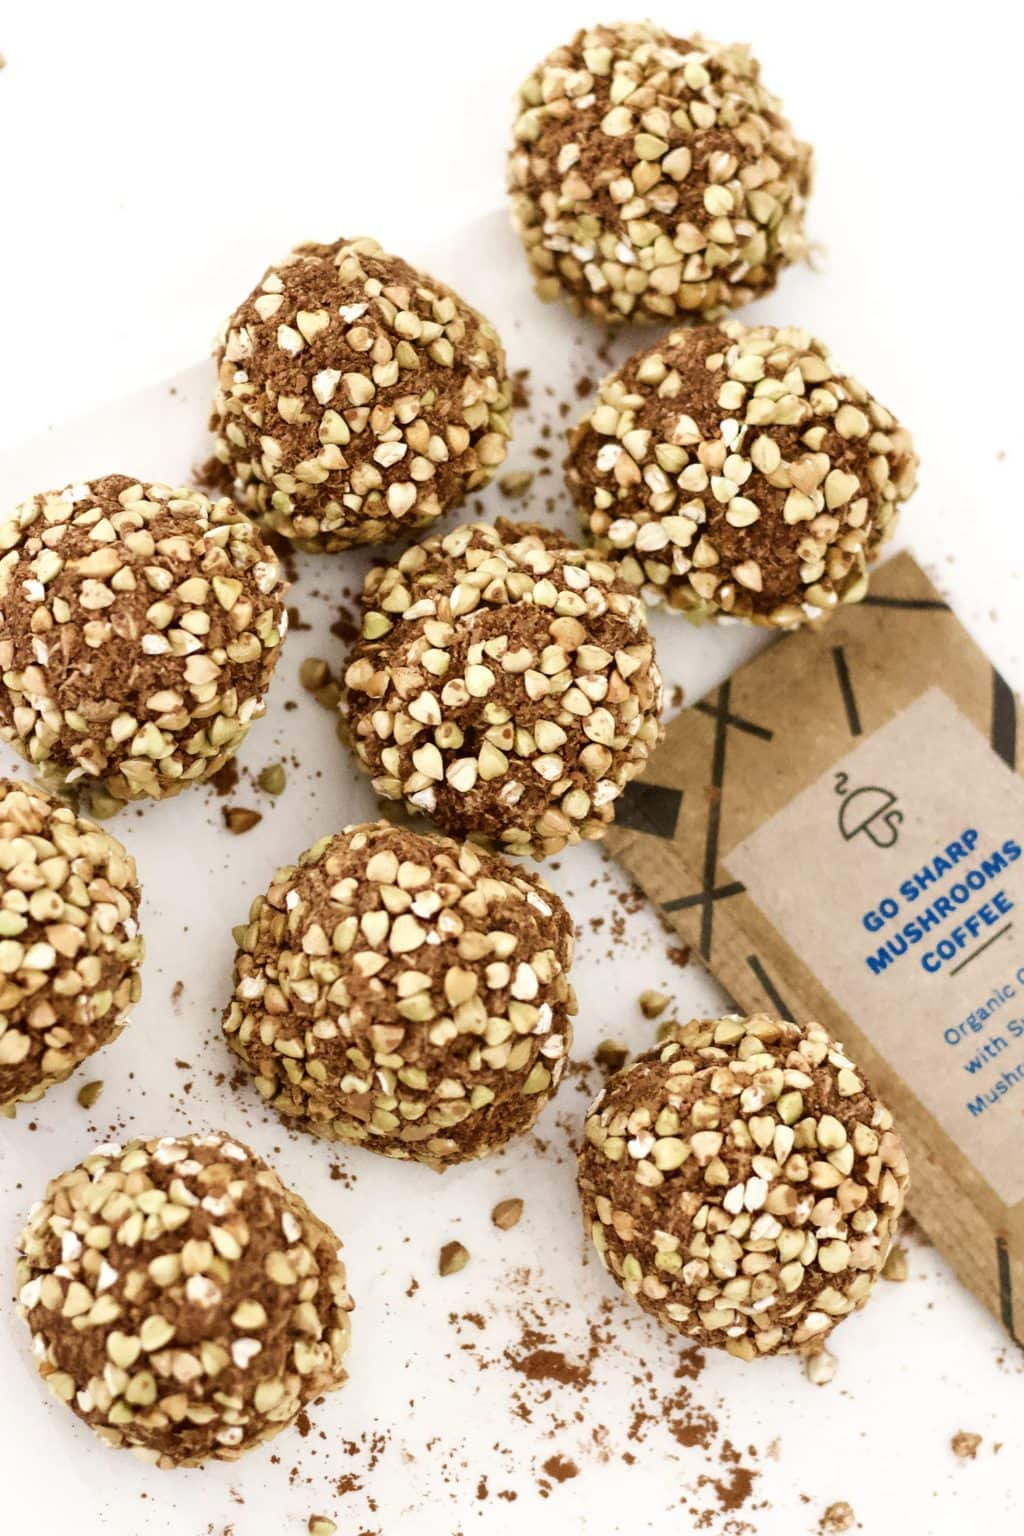 These No-Bake Superfood Mocha Crunch Bites are the perfectly delicious energy-boosting snack! They are super easy to make and totally delish - vegan, keto, gluten-free, sugar-free, oil-free, low-carb, and low-calorie - less than 60 calories each!!